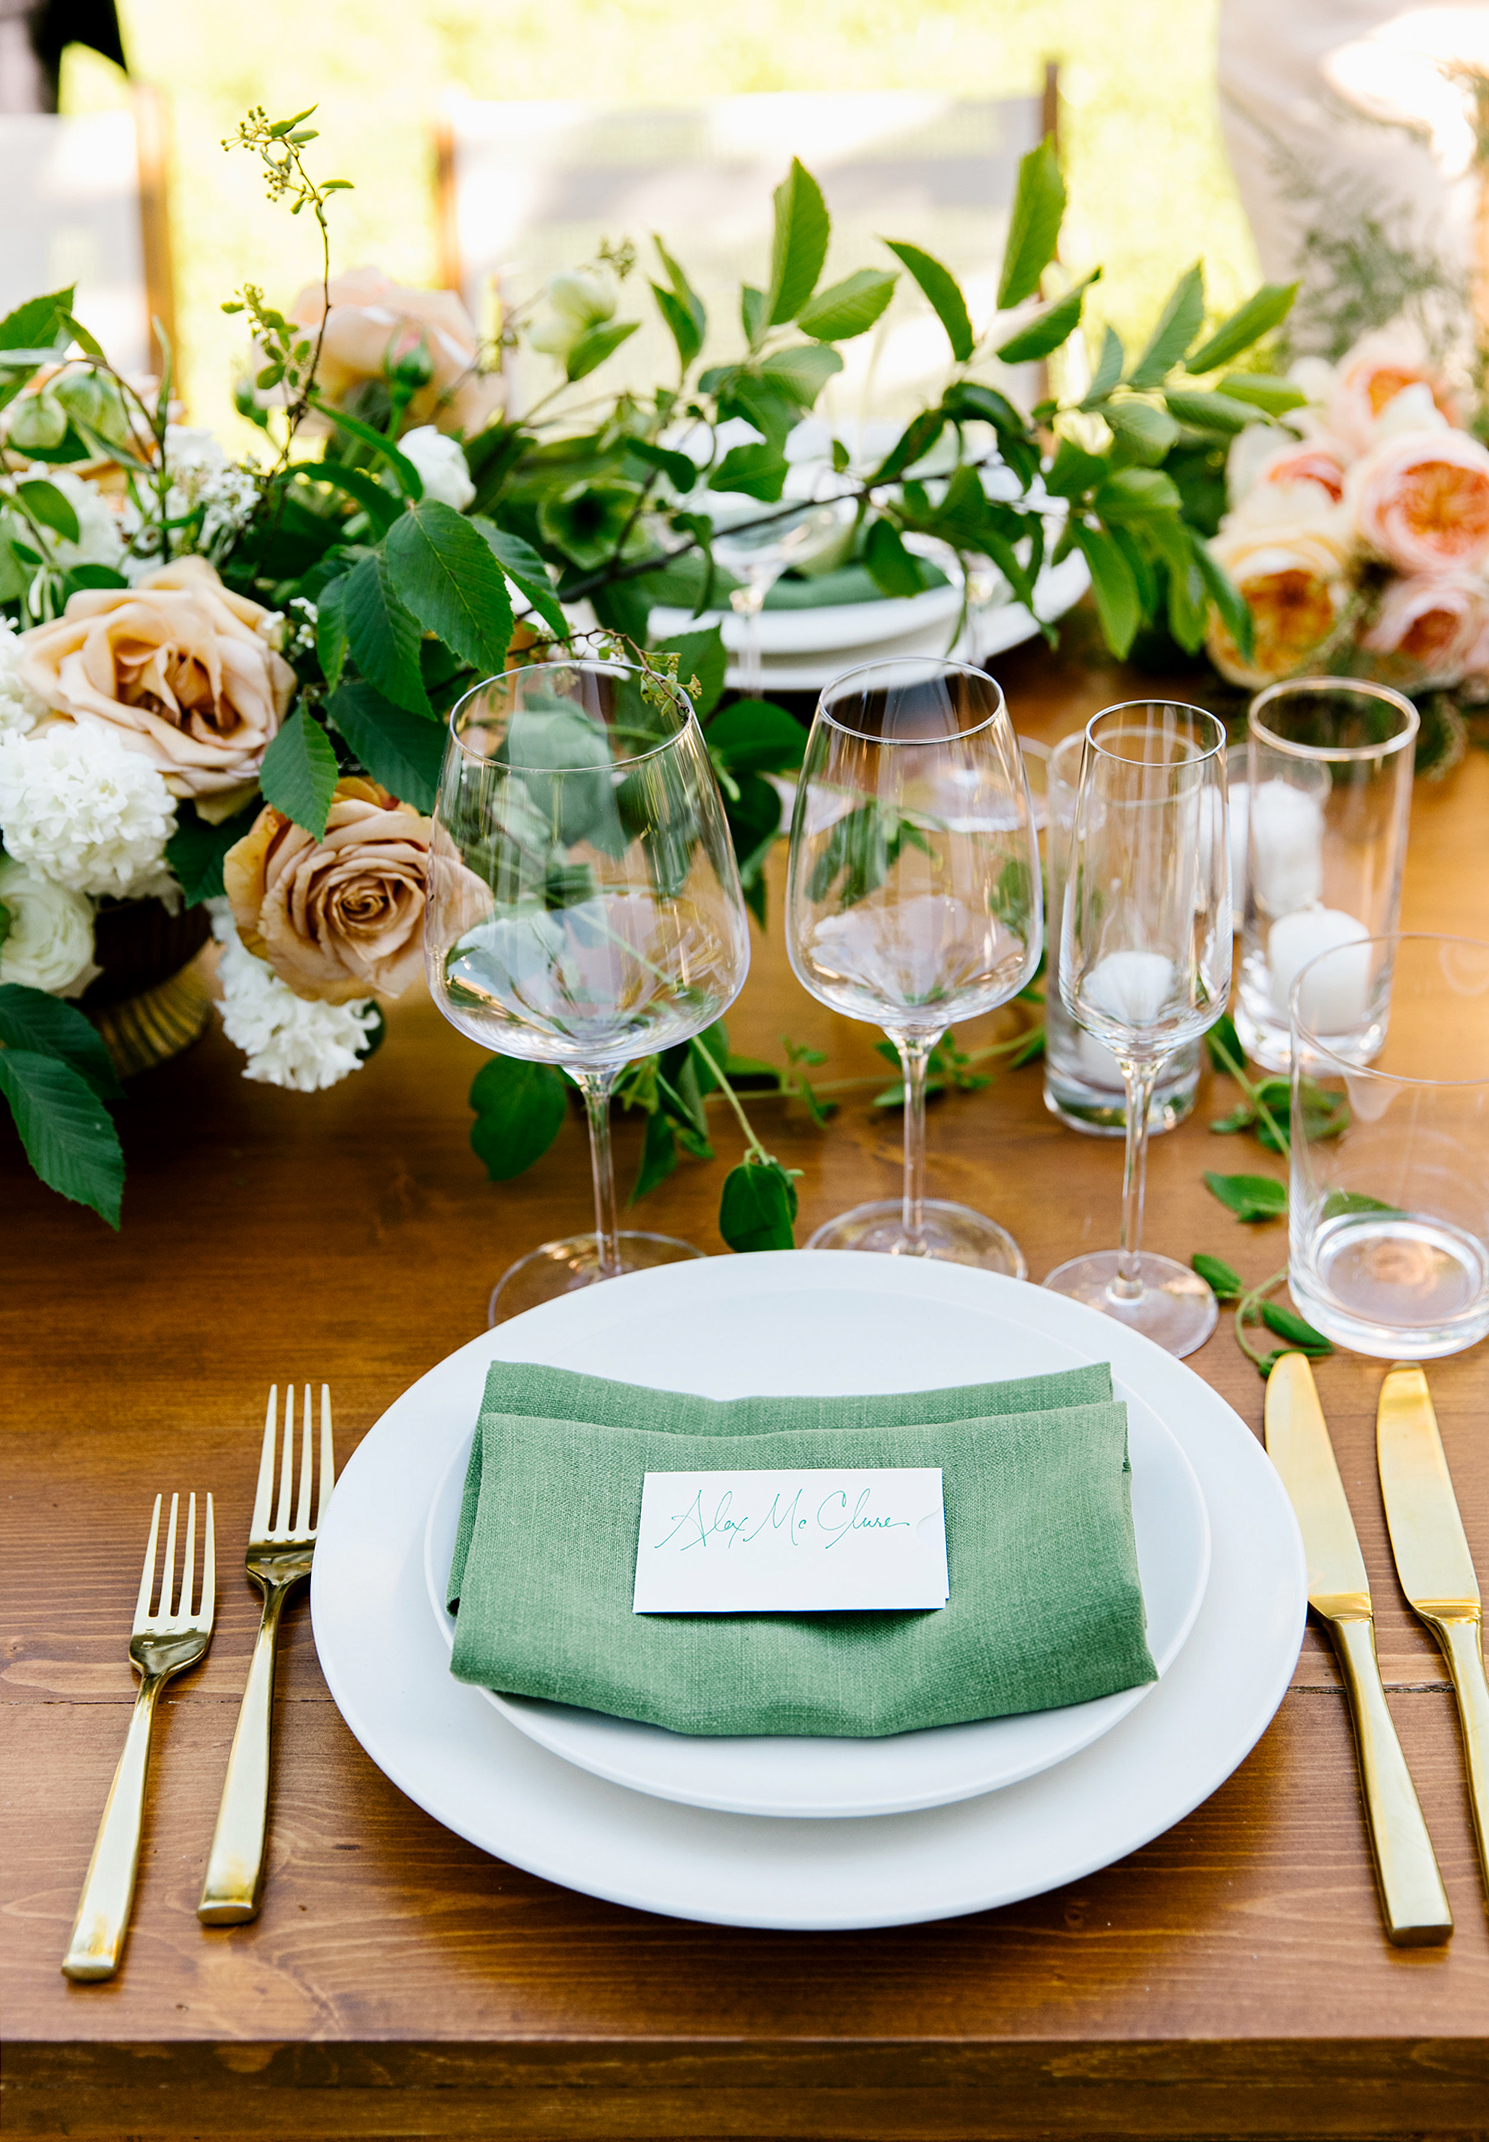 kendall jackson wedding place setting